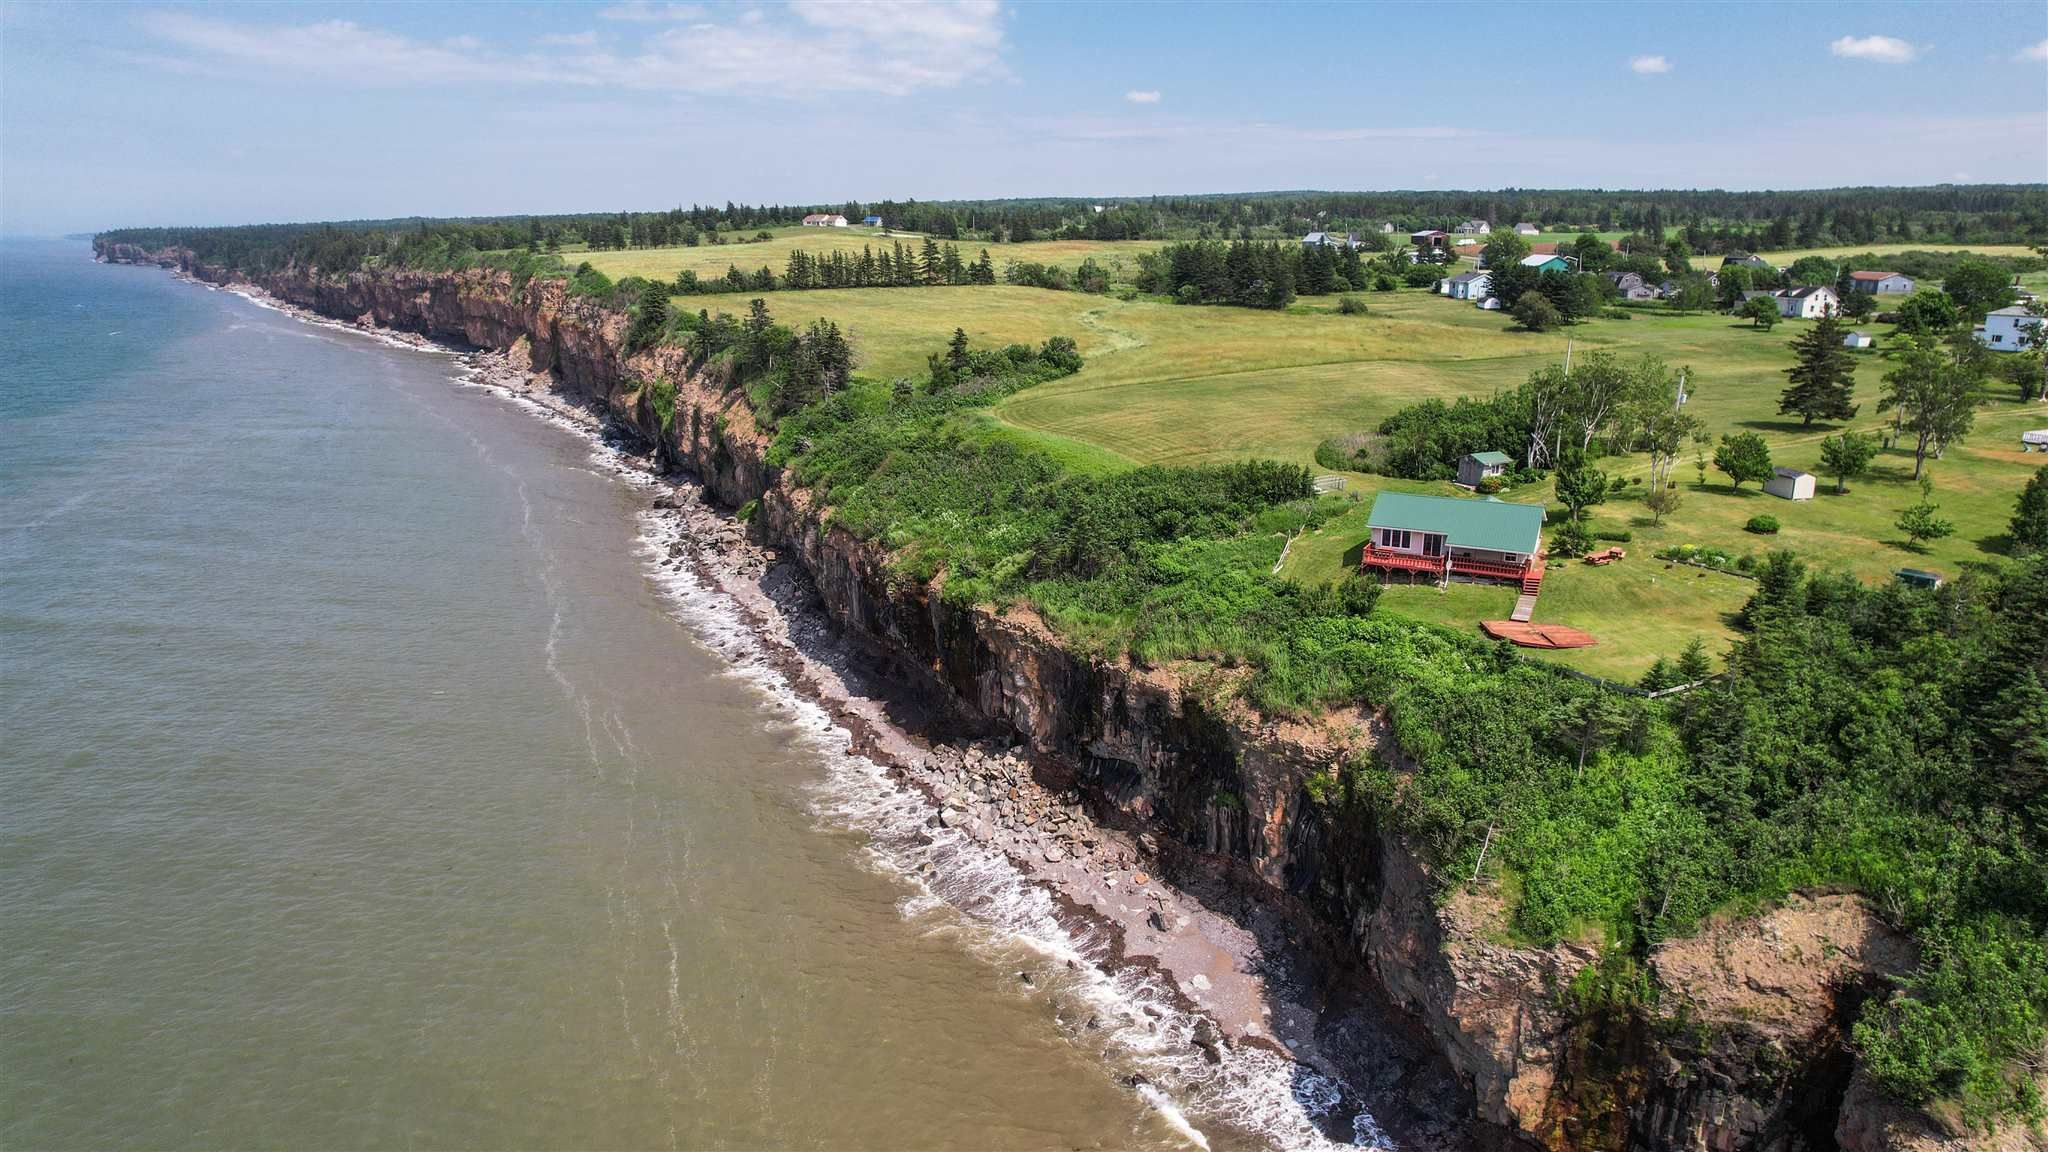 Main Photo: 255 SEAMAN Street in East Margaretsville: 400-Annapolis County Residential for sale (Annapolis Valley)  : MLS®# 202116958